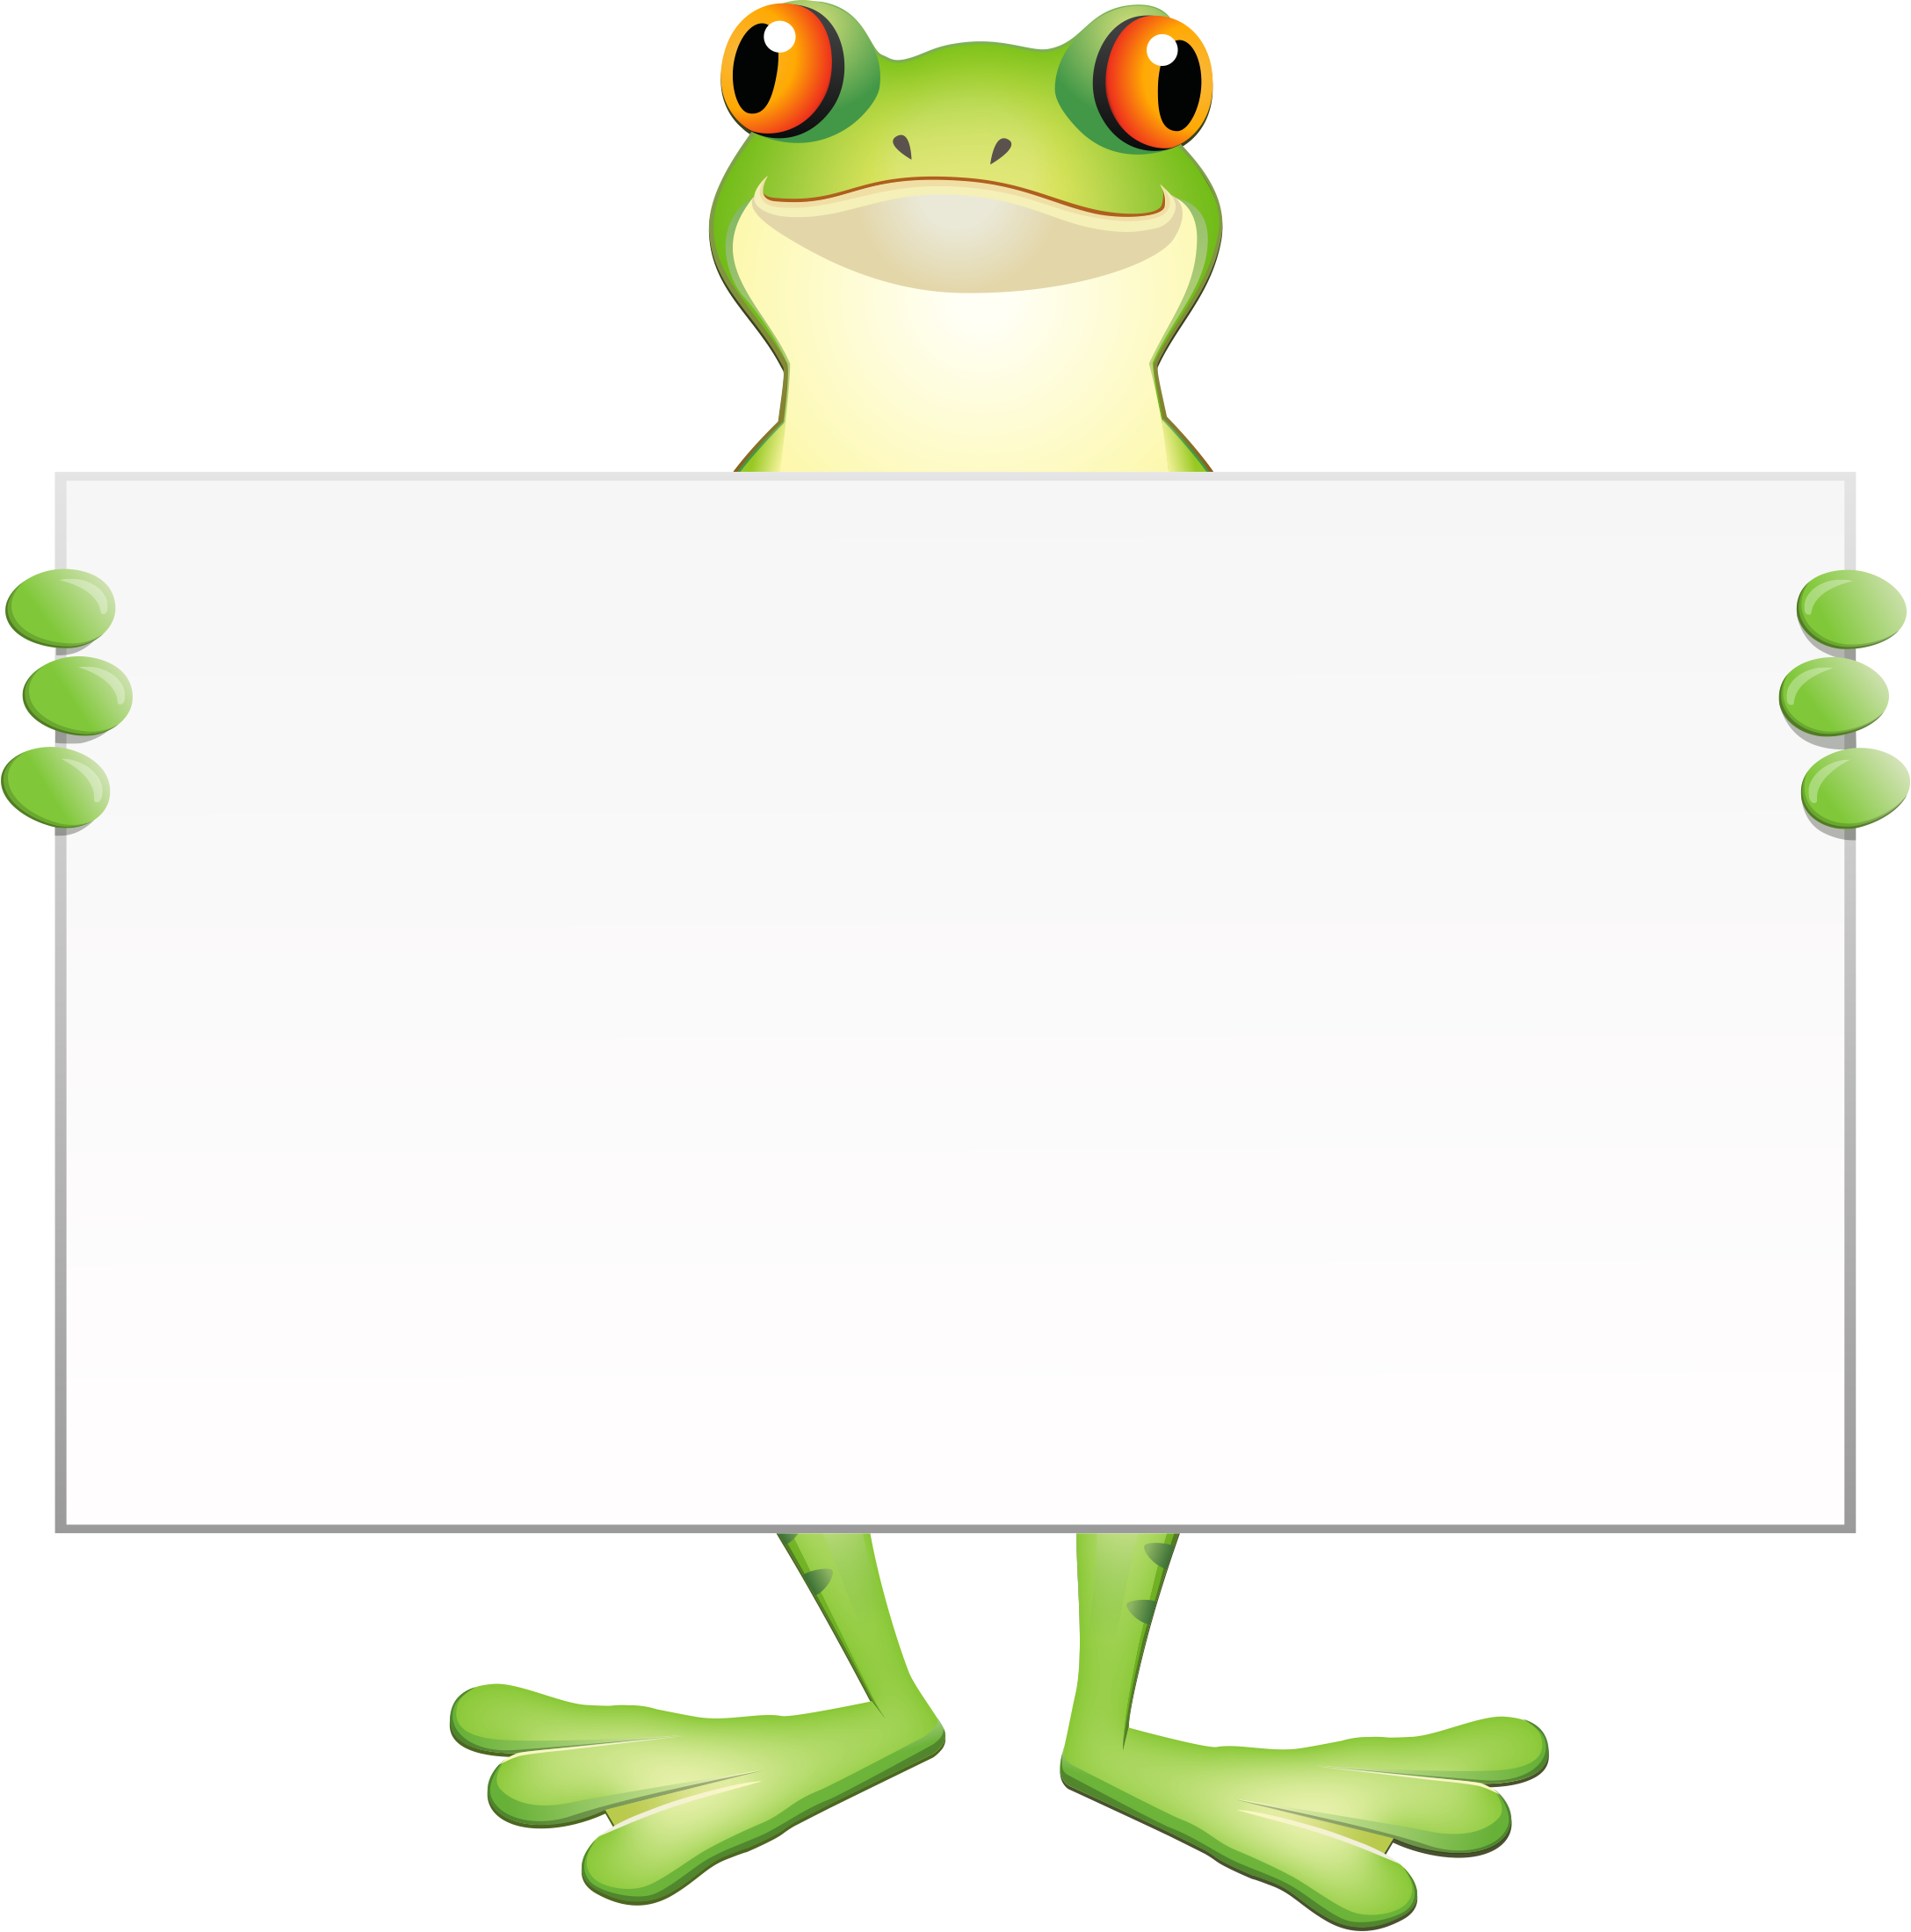 Frogs clipart muscular. The healthy frog fees